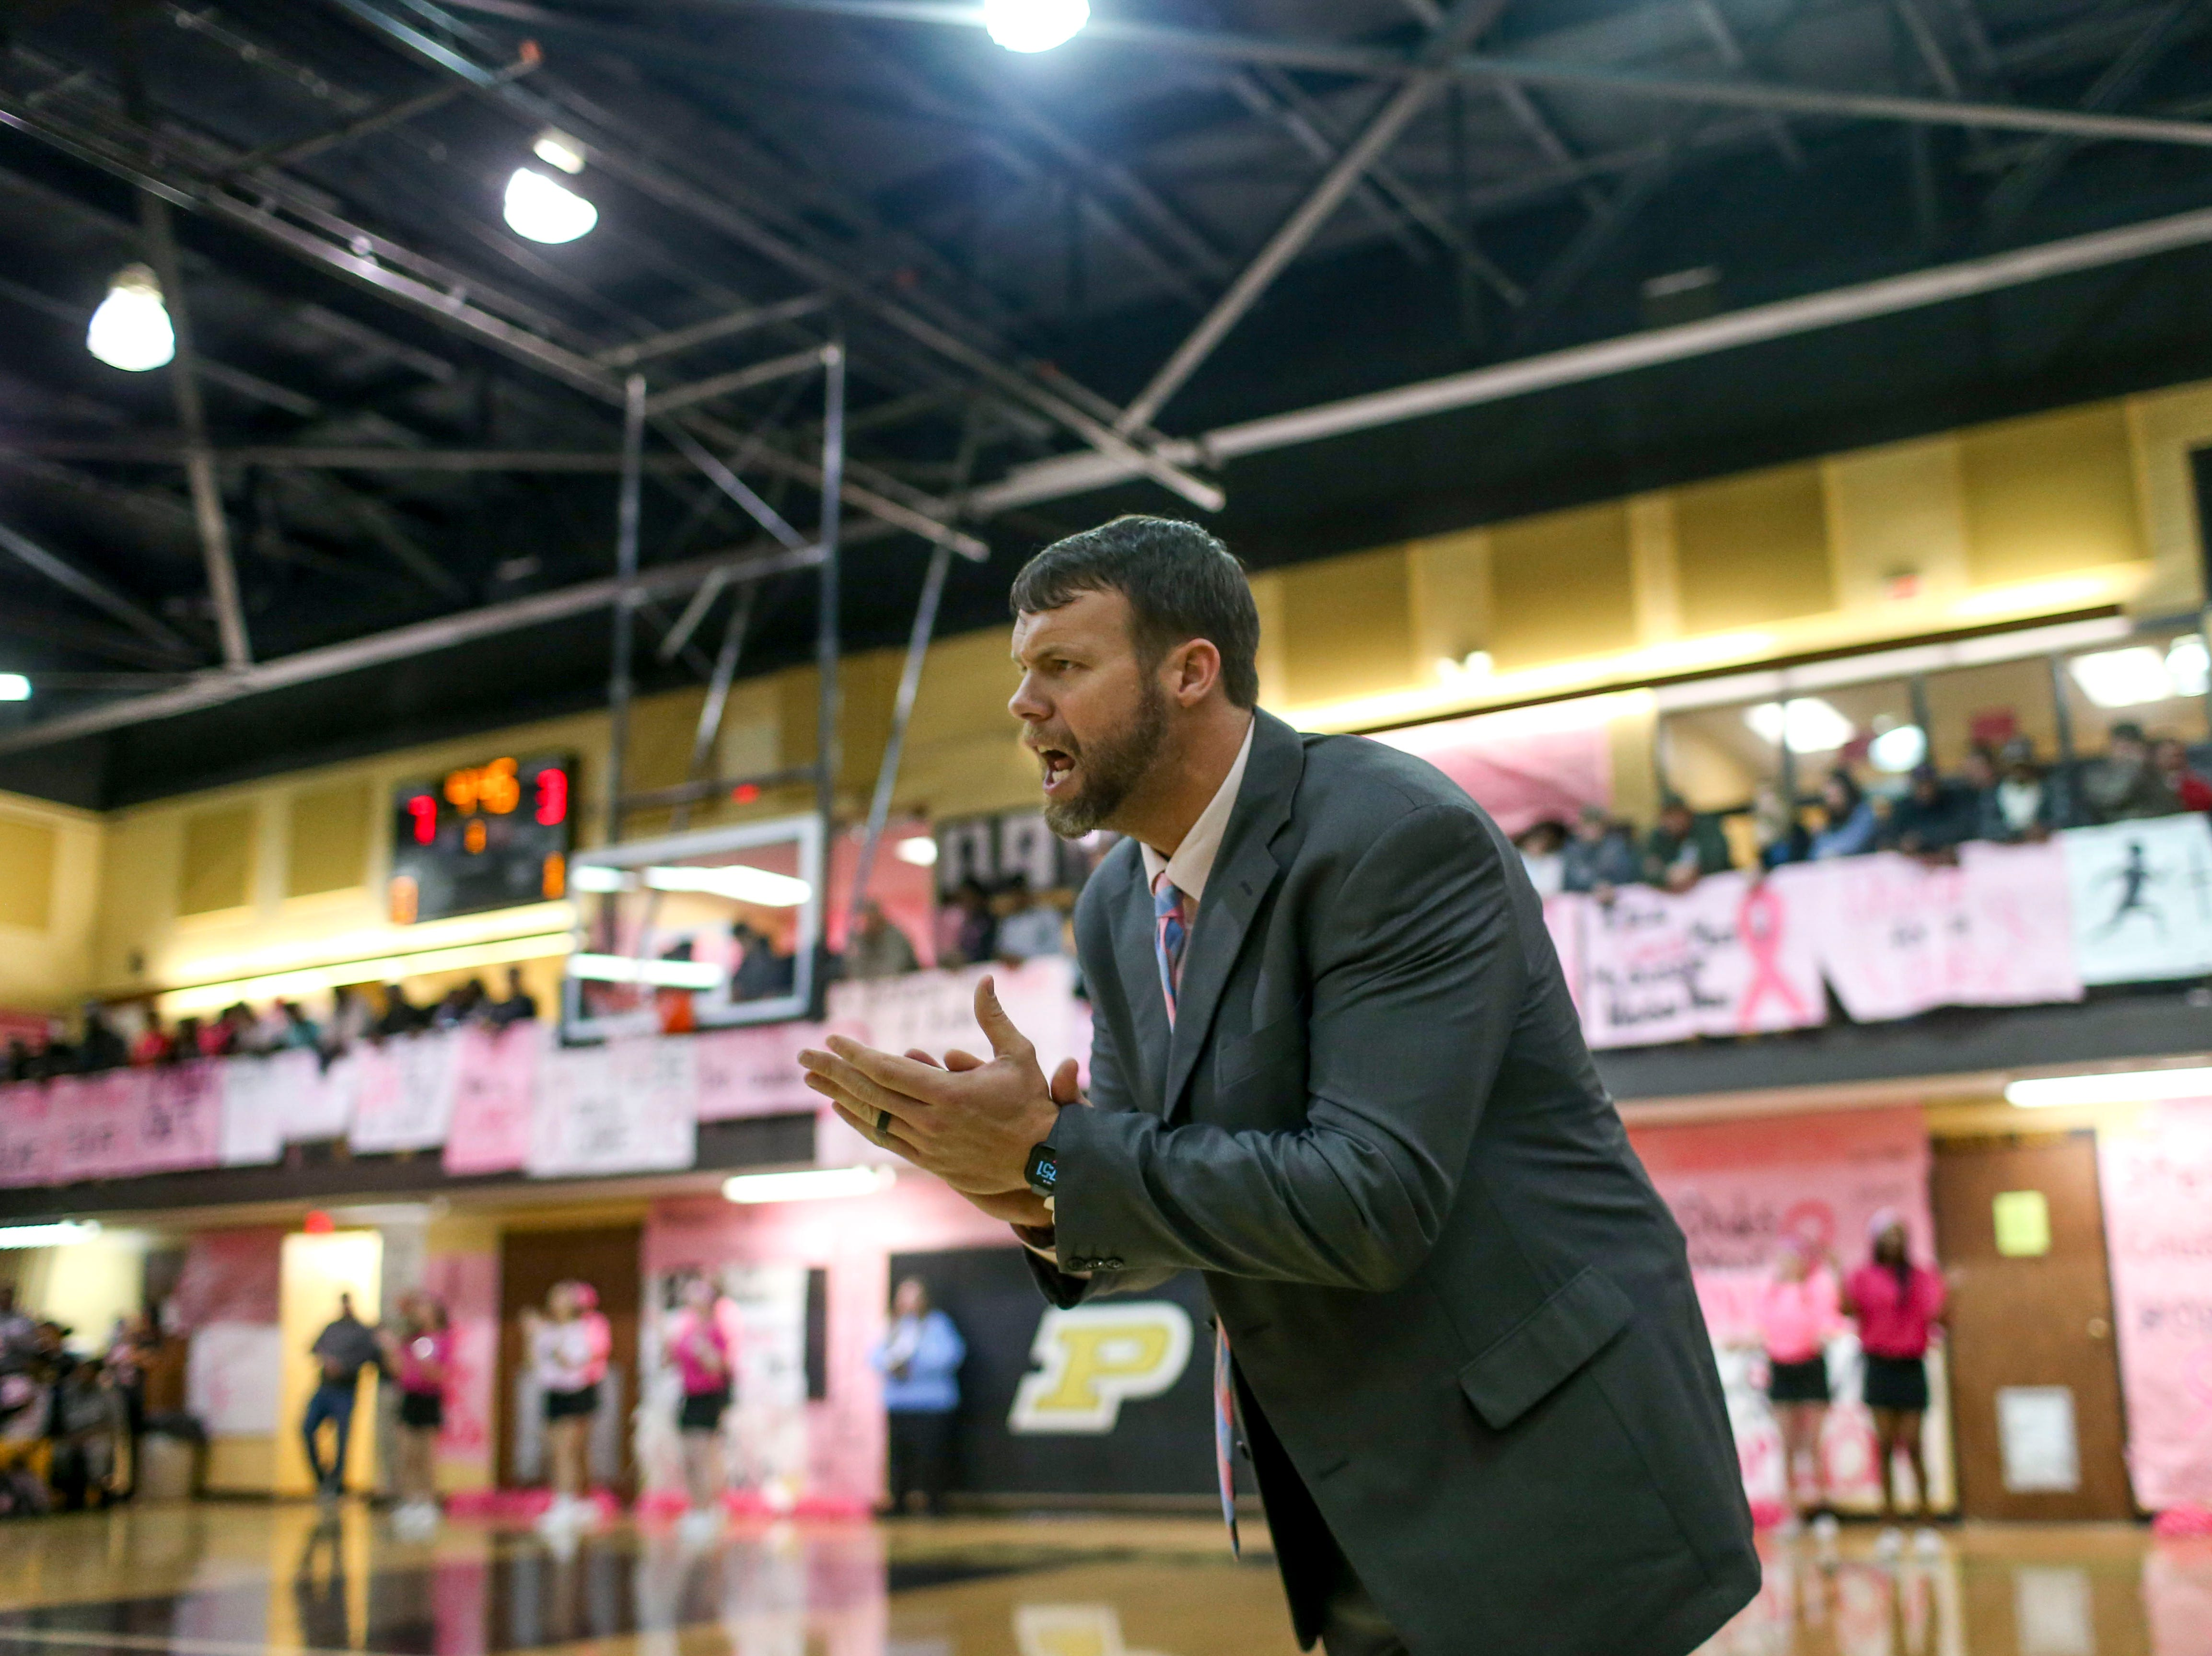 Peabody head coach Miller cheers his players on in a TSSAA basketball game between Peabody and Gibson County at Peabody High School in Trenton, Tenn., on Friday, Feb. 8, 2019.